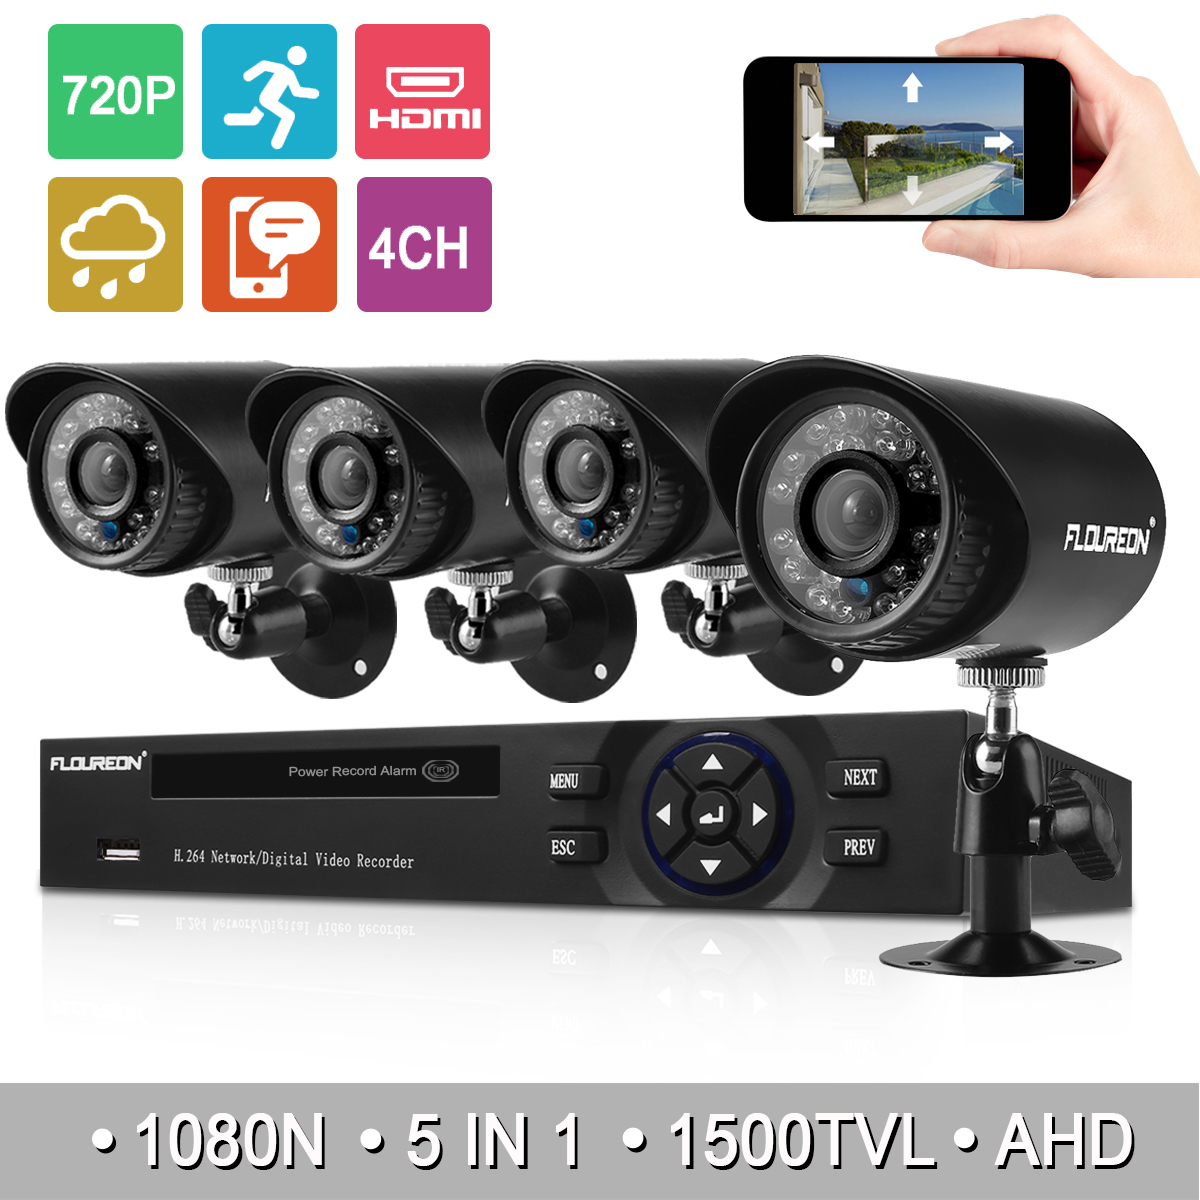 4CH 1080N AHD DVR+4X Outdoor CCTV 1500TVL 720P 1.0MP Camera Security System Kit